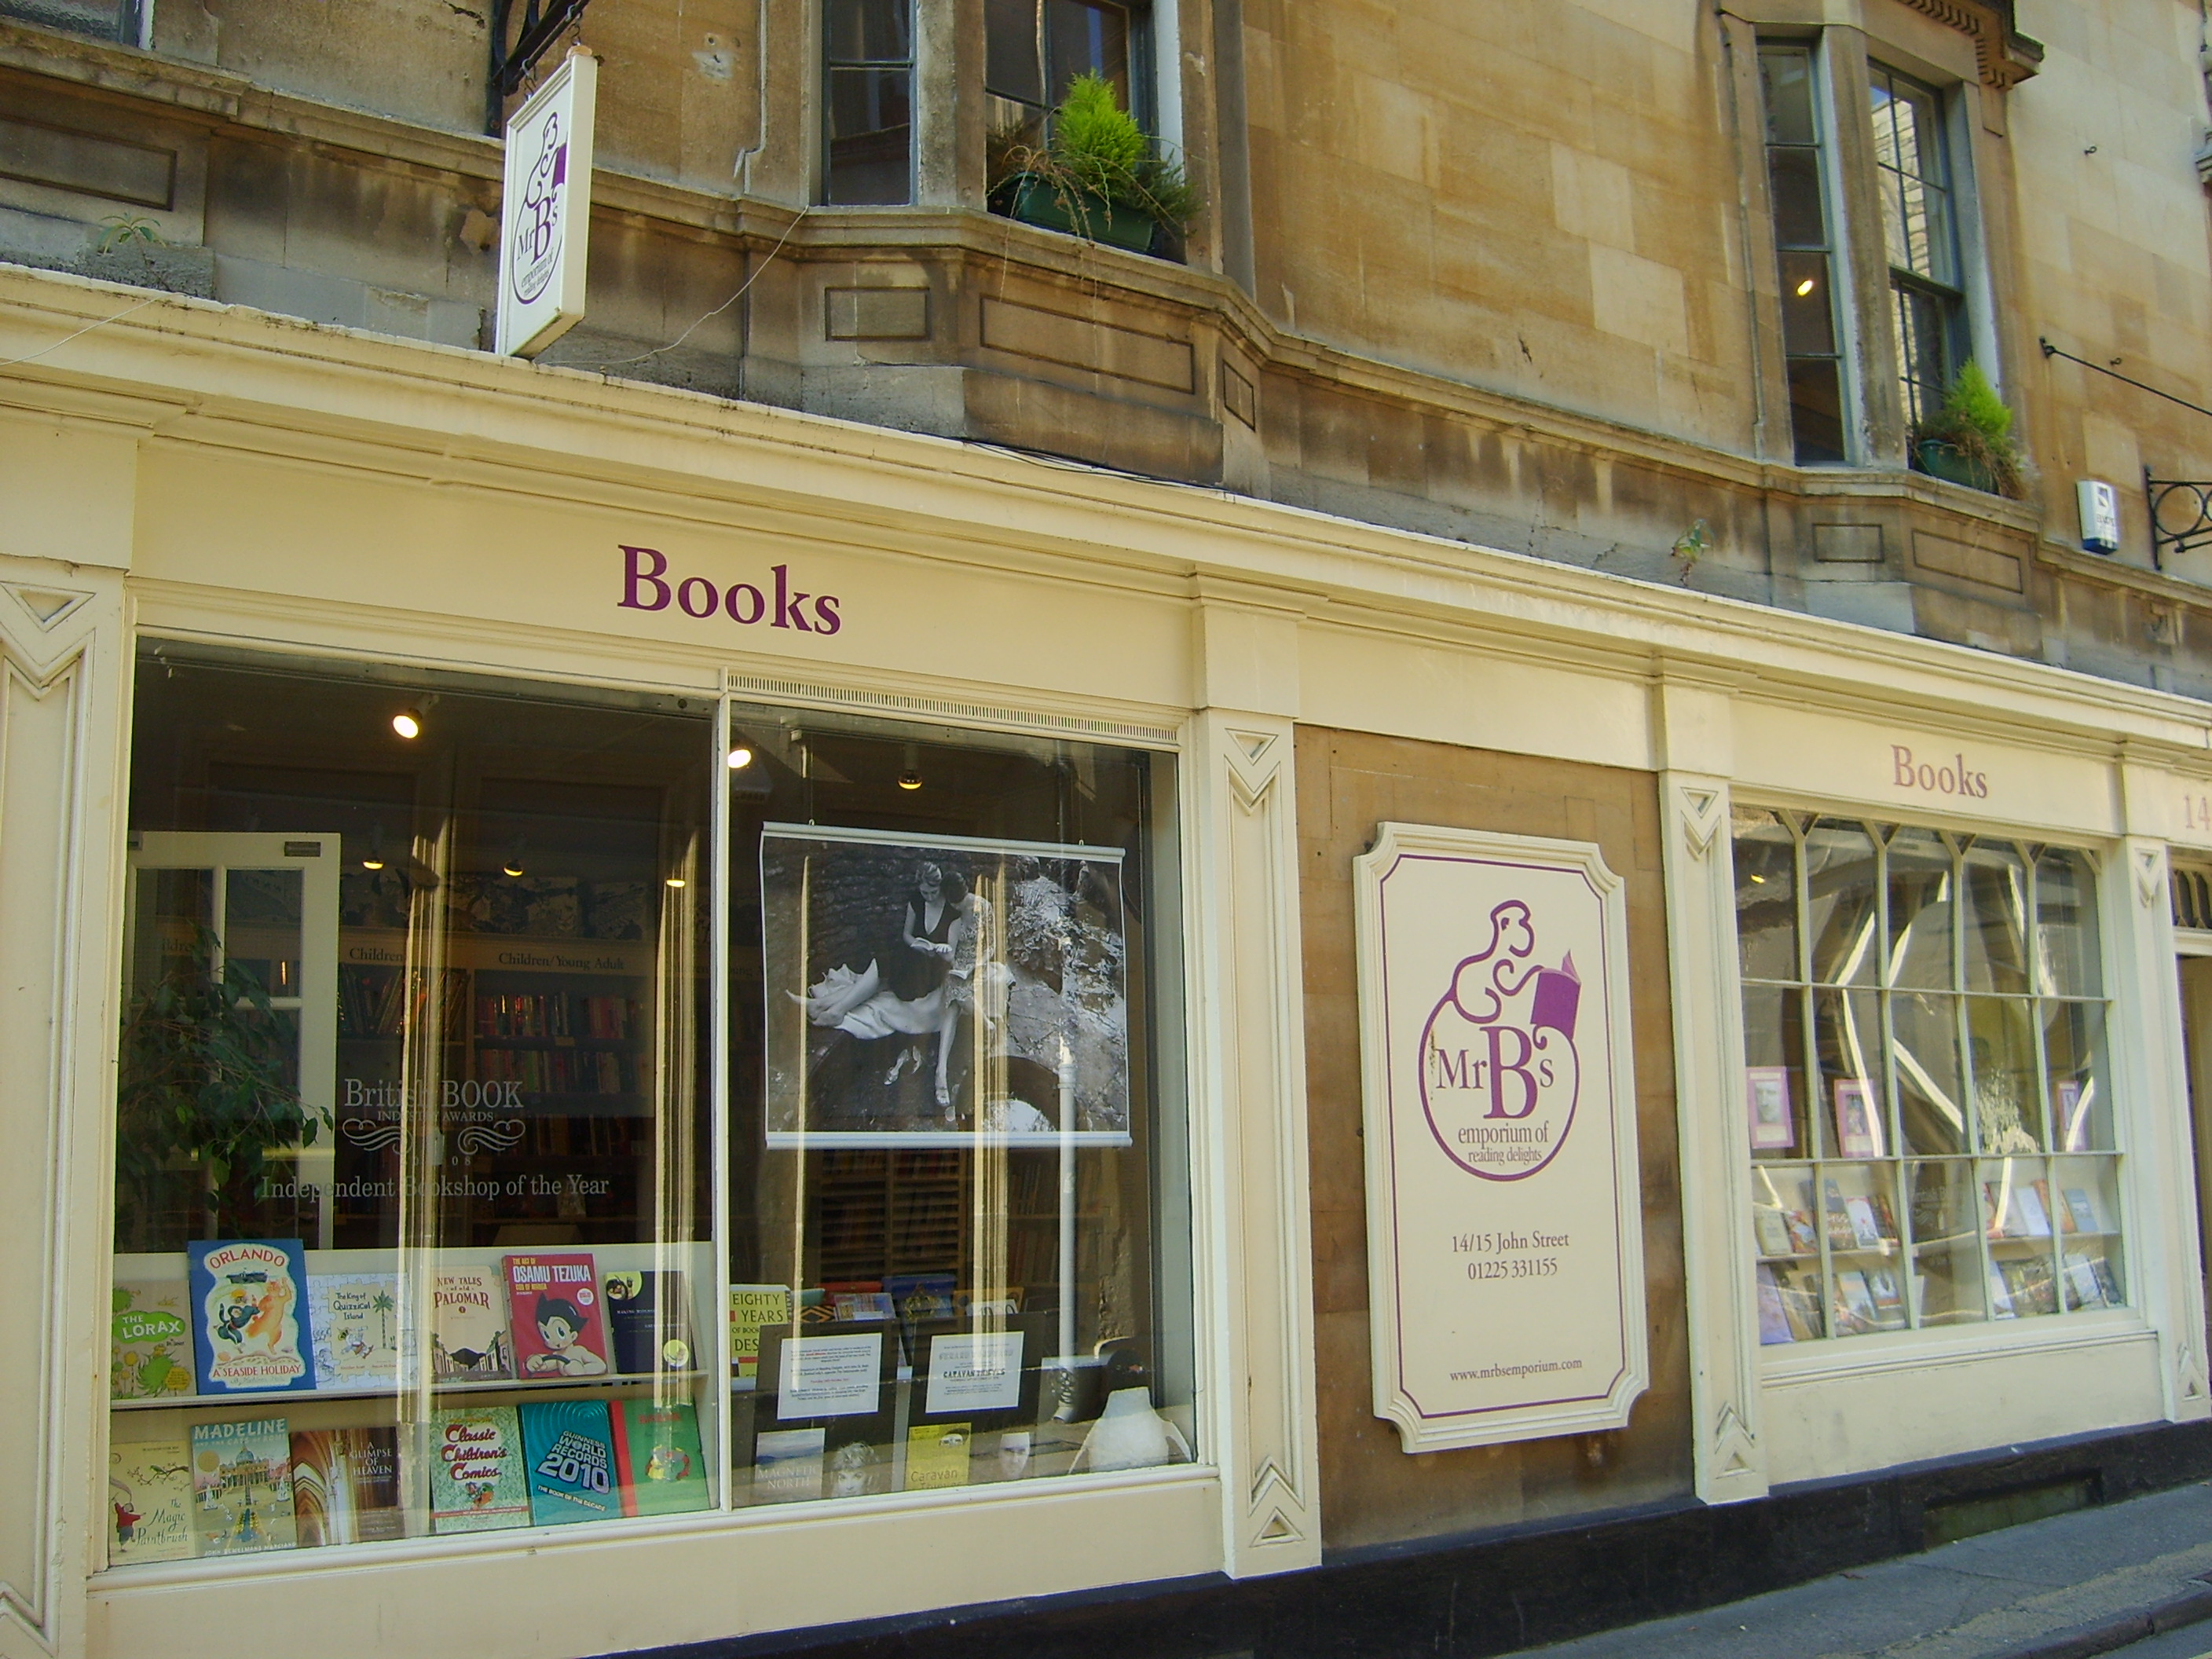 Mr B's Bookshop is hands-down the best shop for new books that we've ever visited--anywhere!